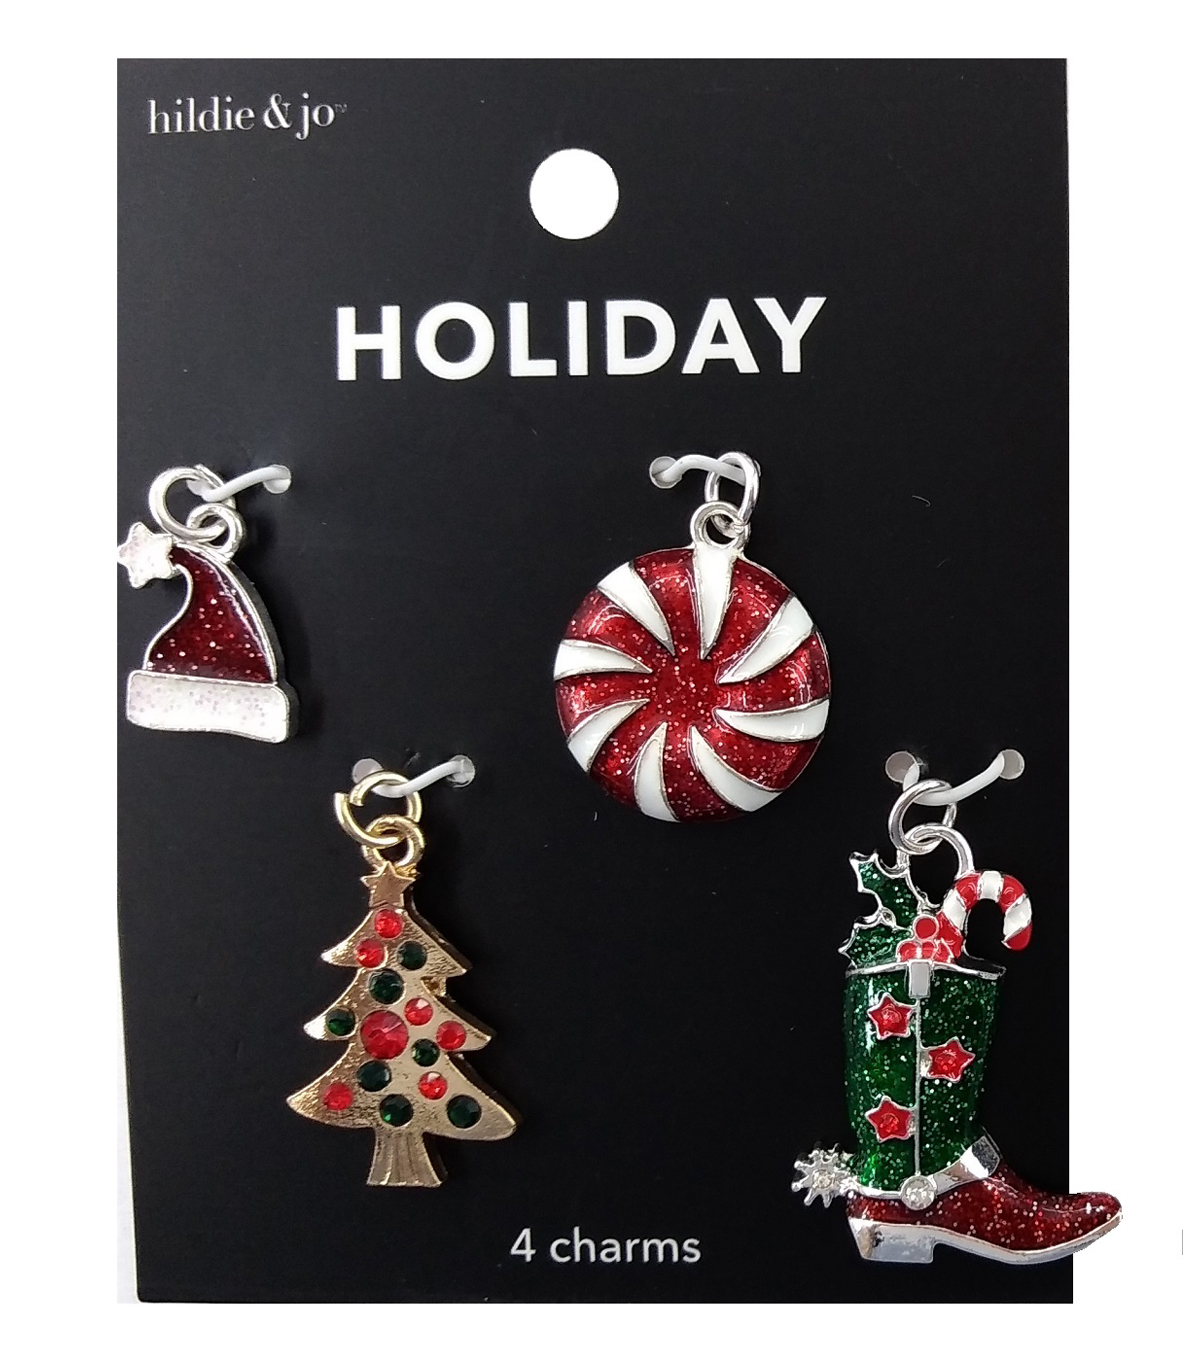 hildie & jo Holiday Charms-Cowboy Boot & Peppermint